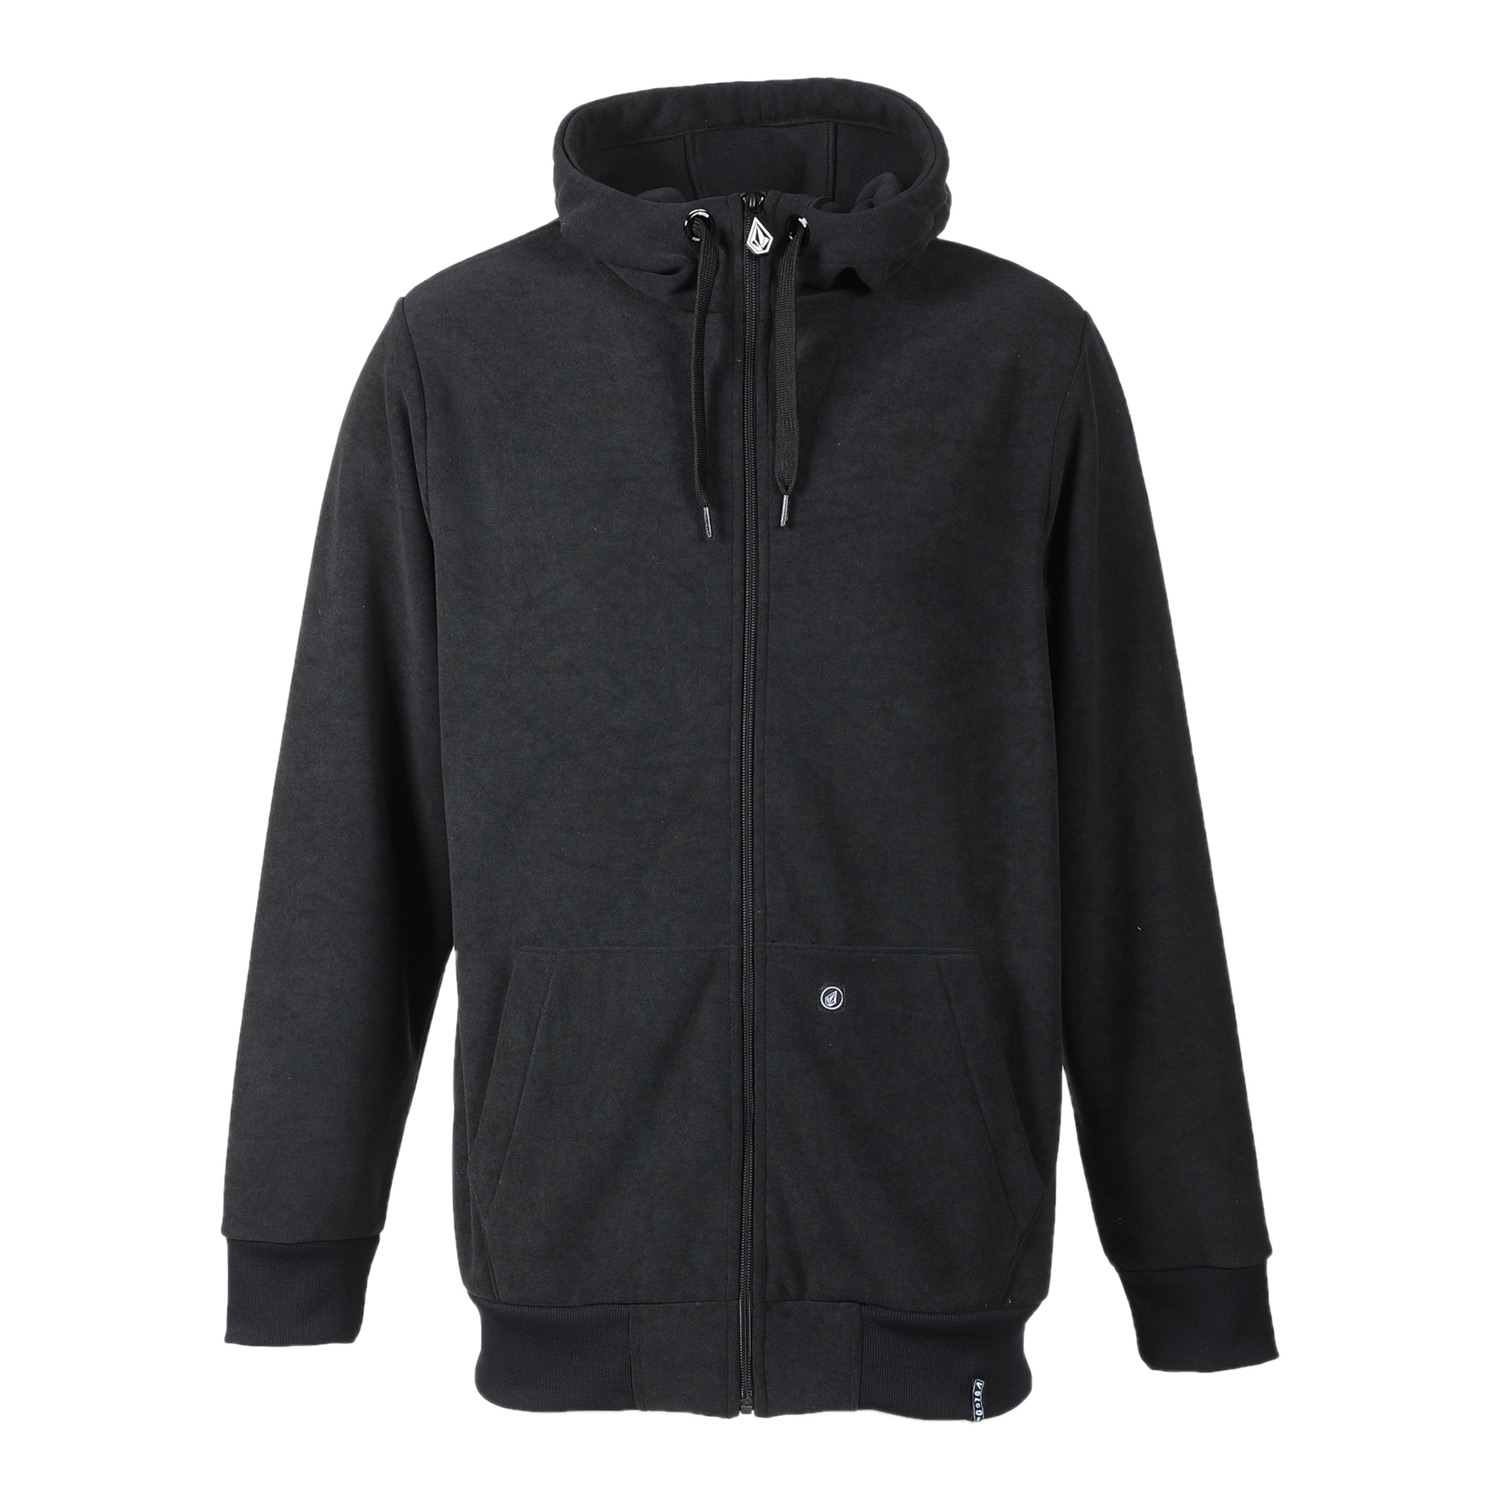 Surf Key Features of the Volcom FT Hoodie: 2-Layer Bonded French Terry Standard Fit Zippered Hand Pockets Drawcord Hood Cinch Whistle Zipper Pull Stone Woven Label - $58.95